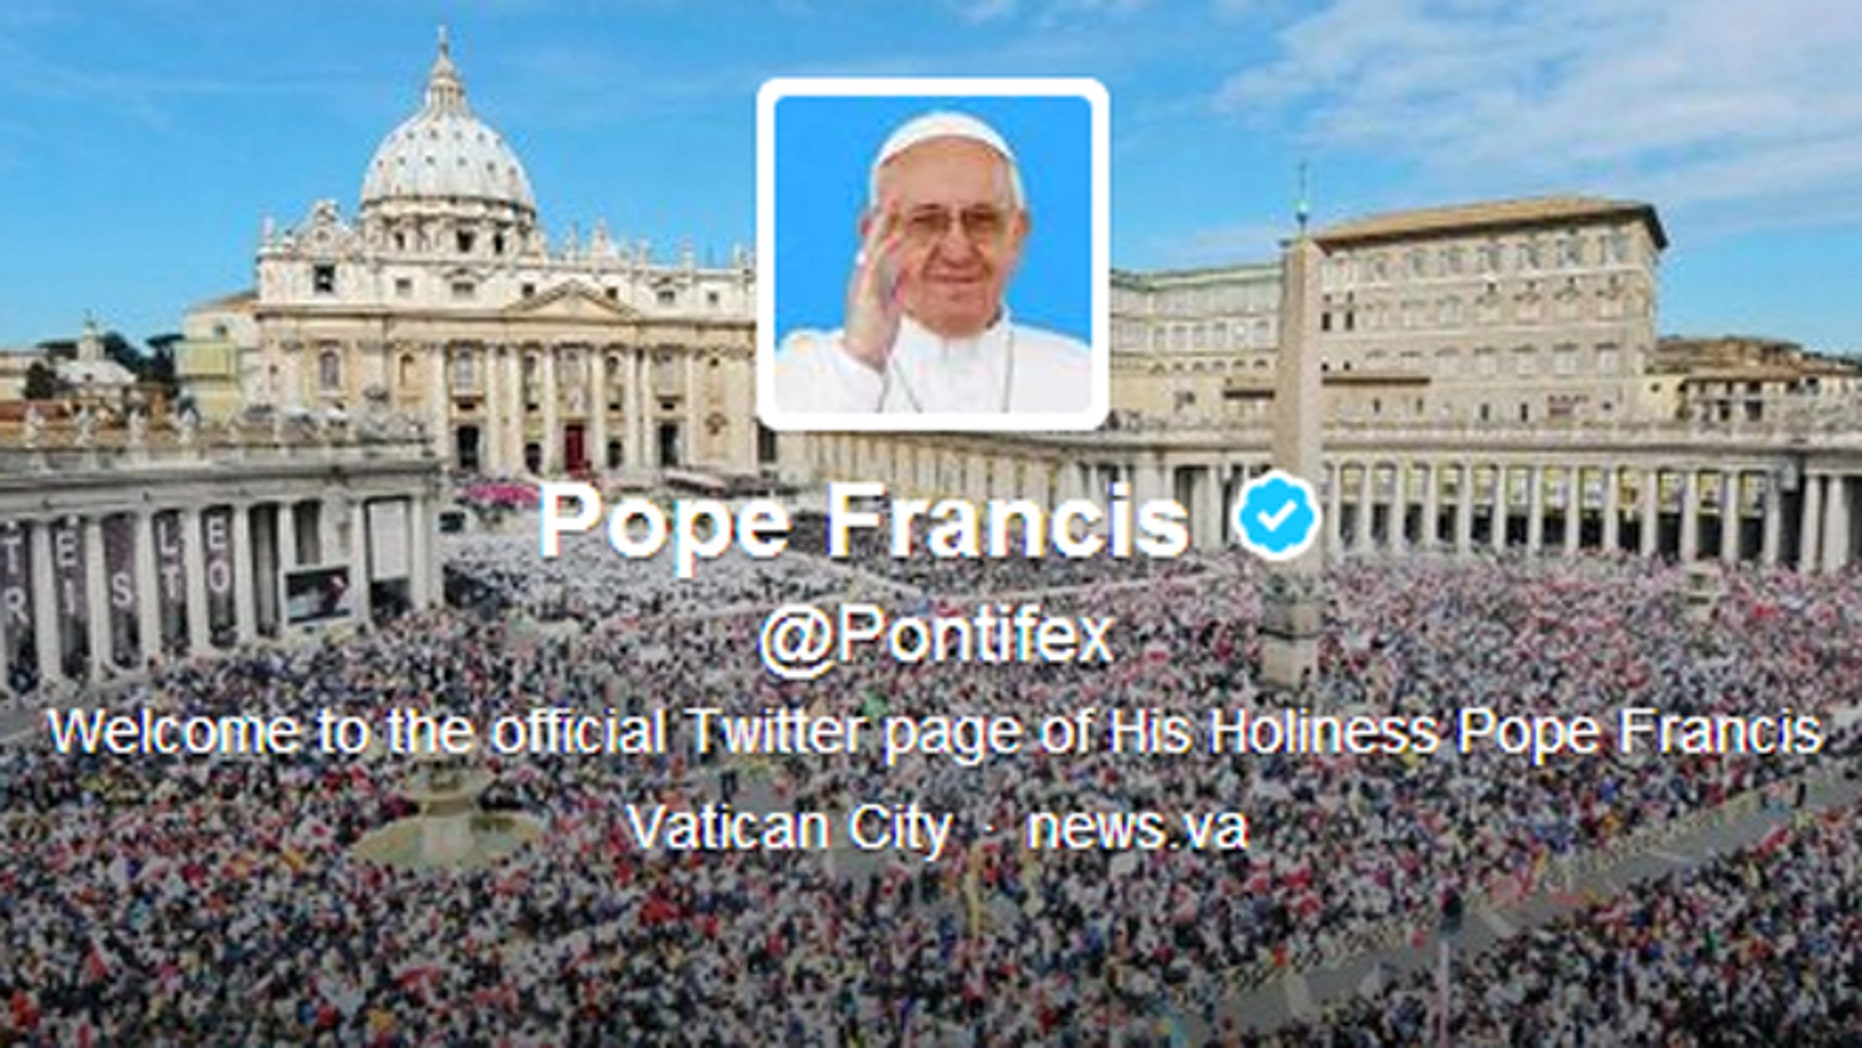 The official Twitter account of Pope Francis.